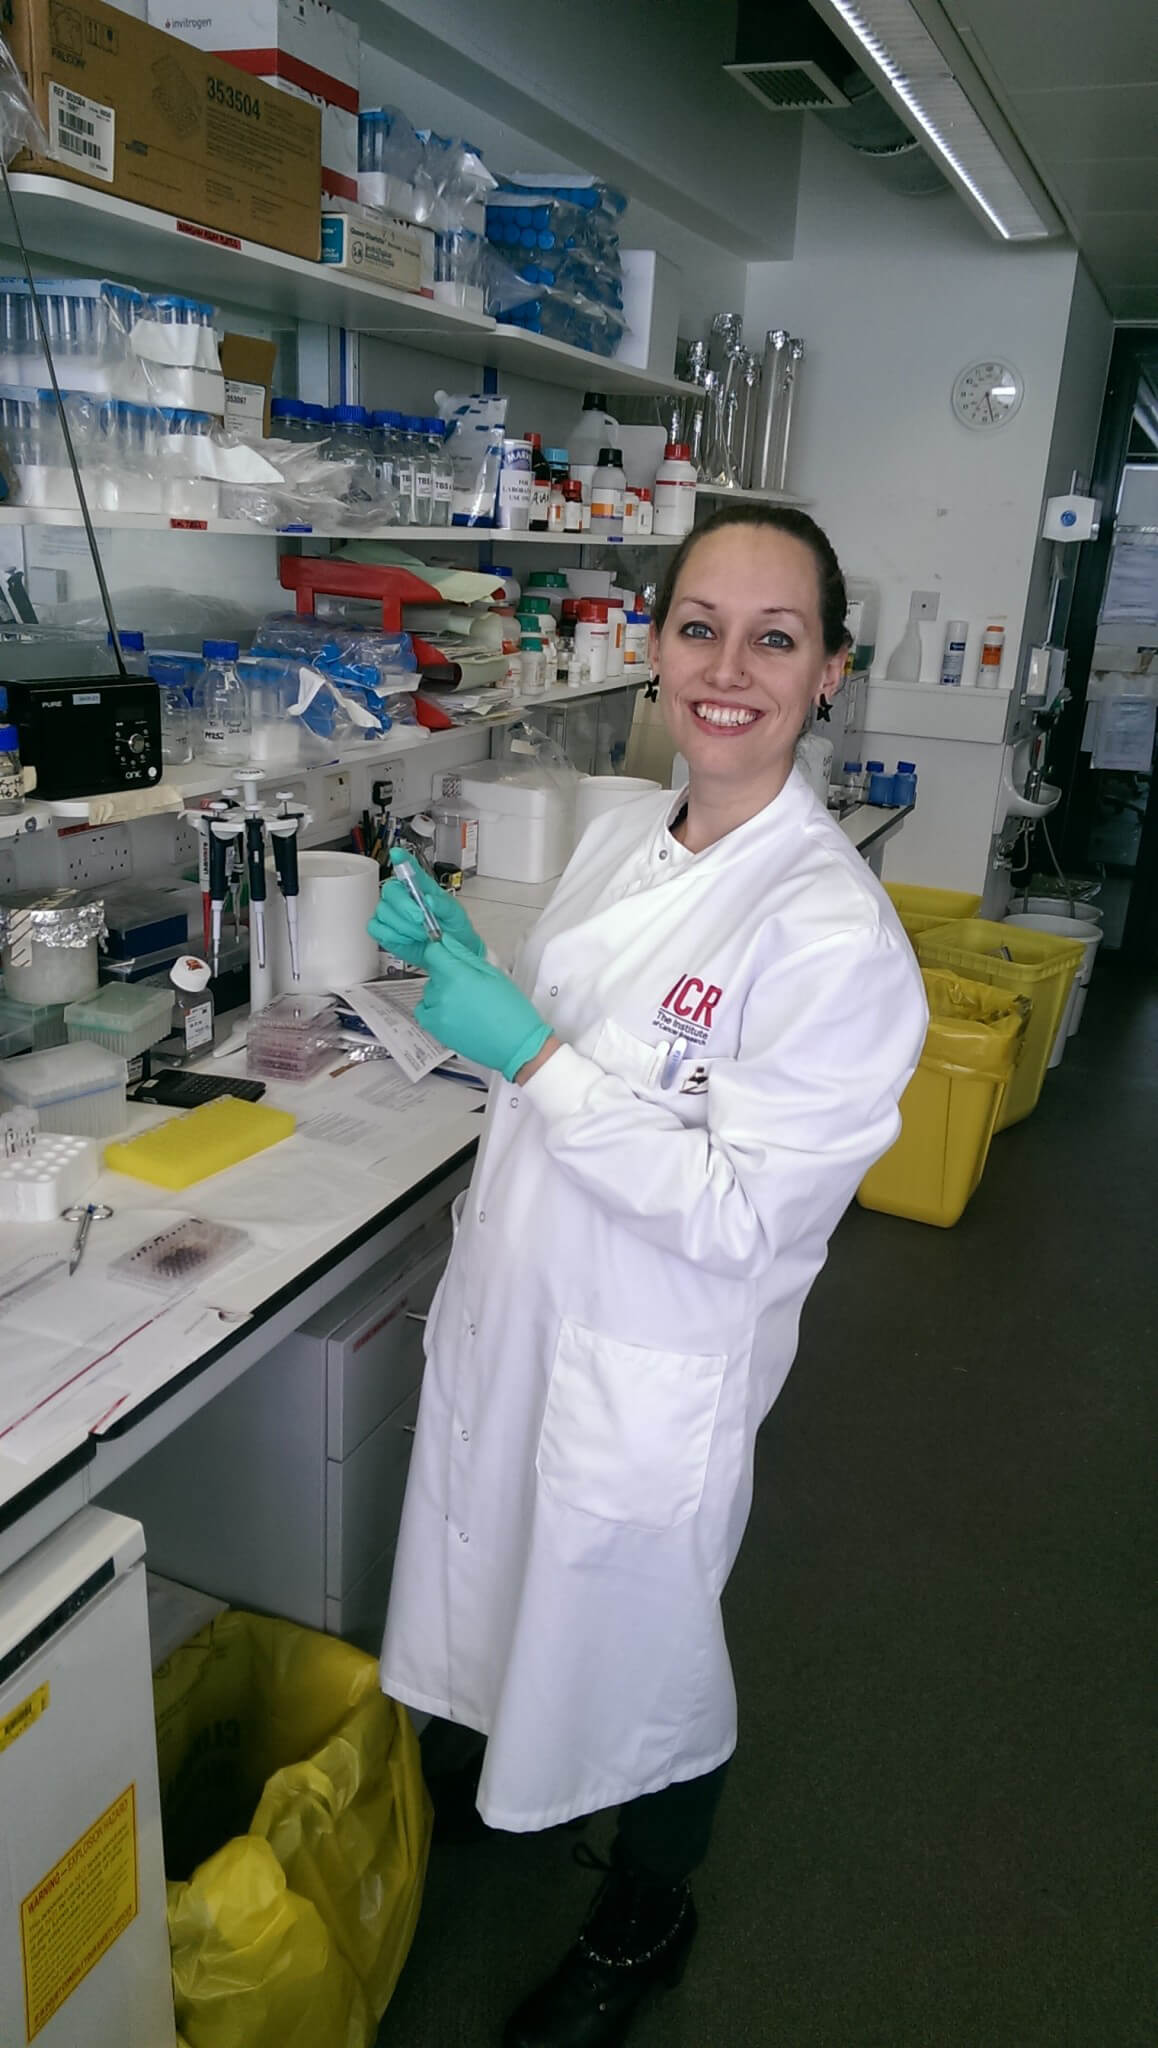 Dr Zoe Walters is researching new treatments for rhabdomyosarcoma